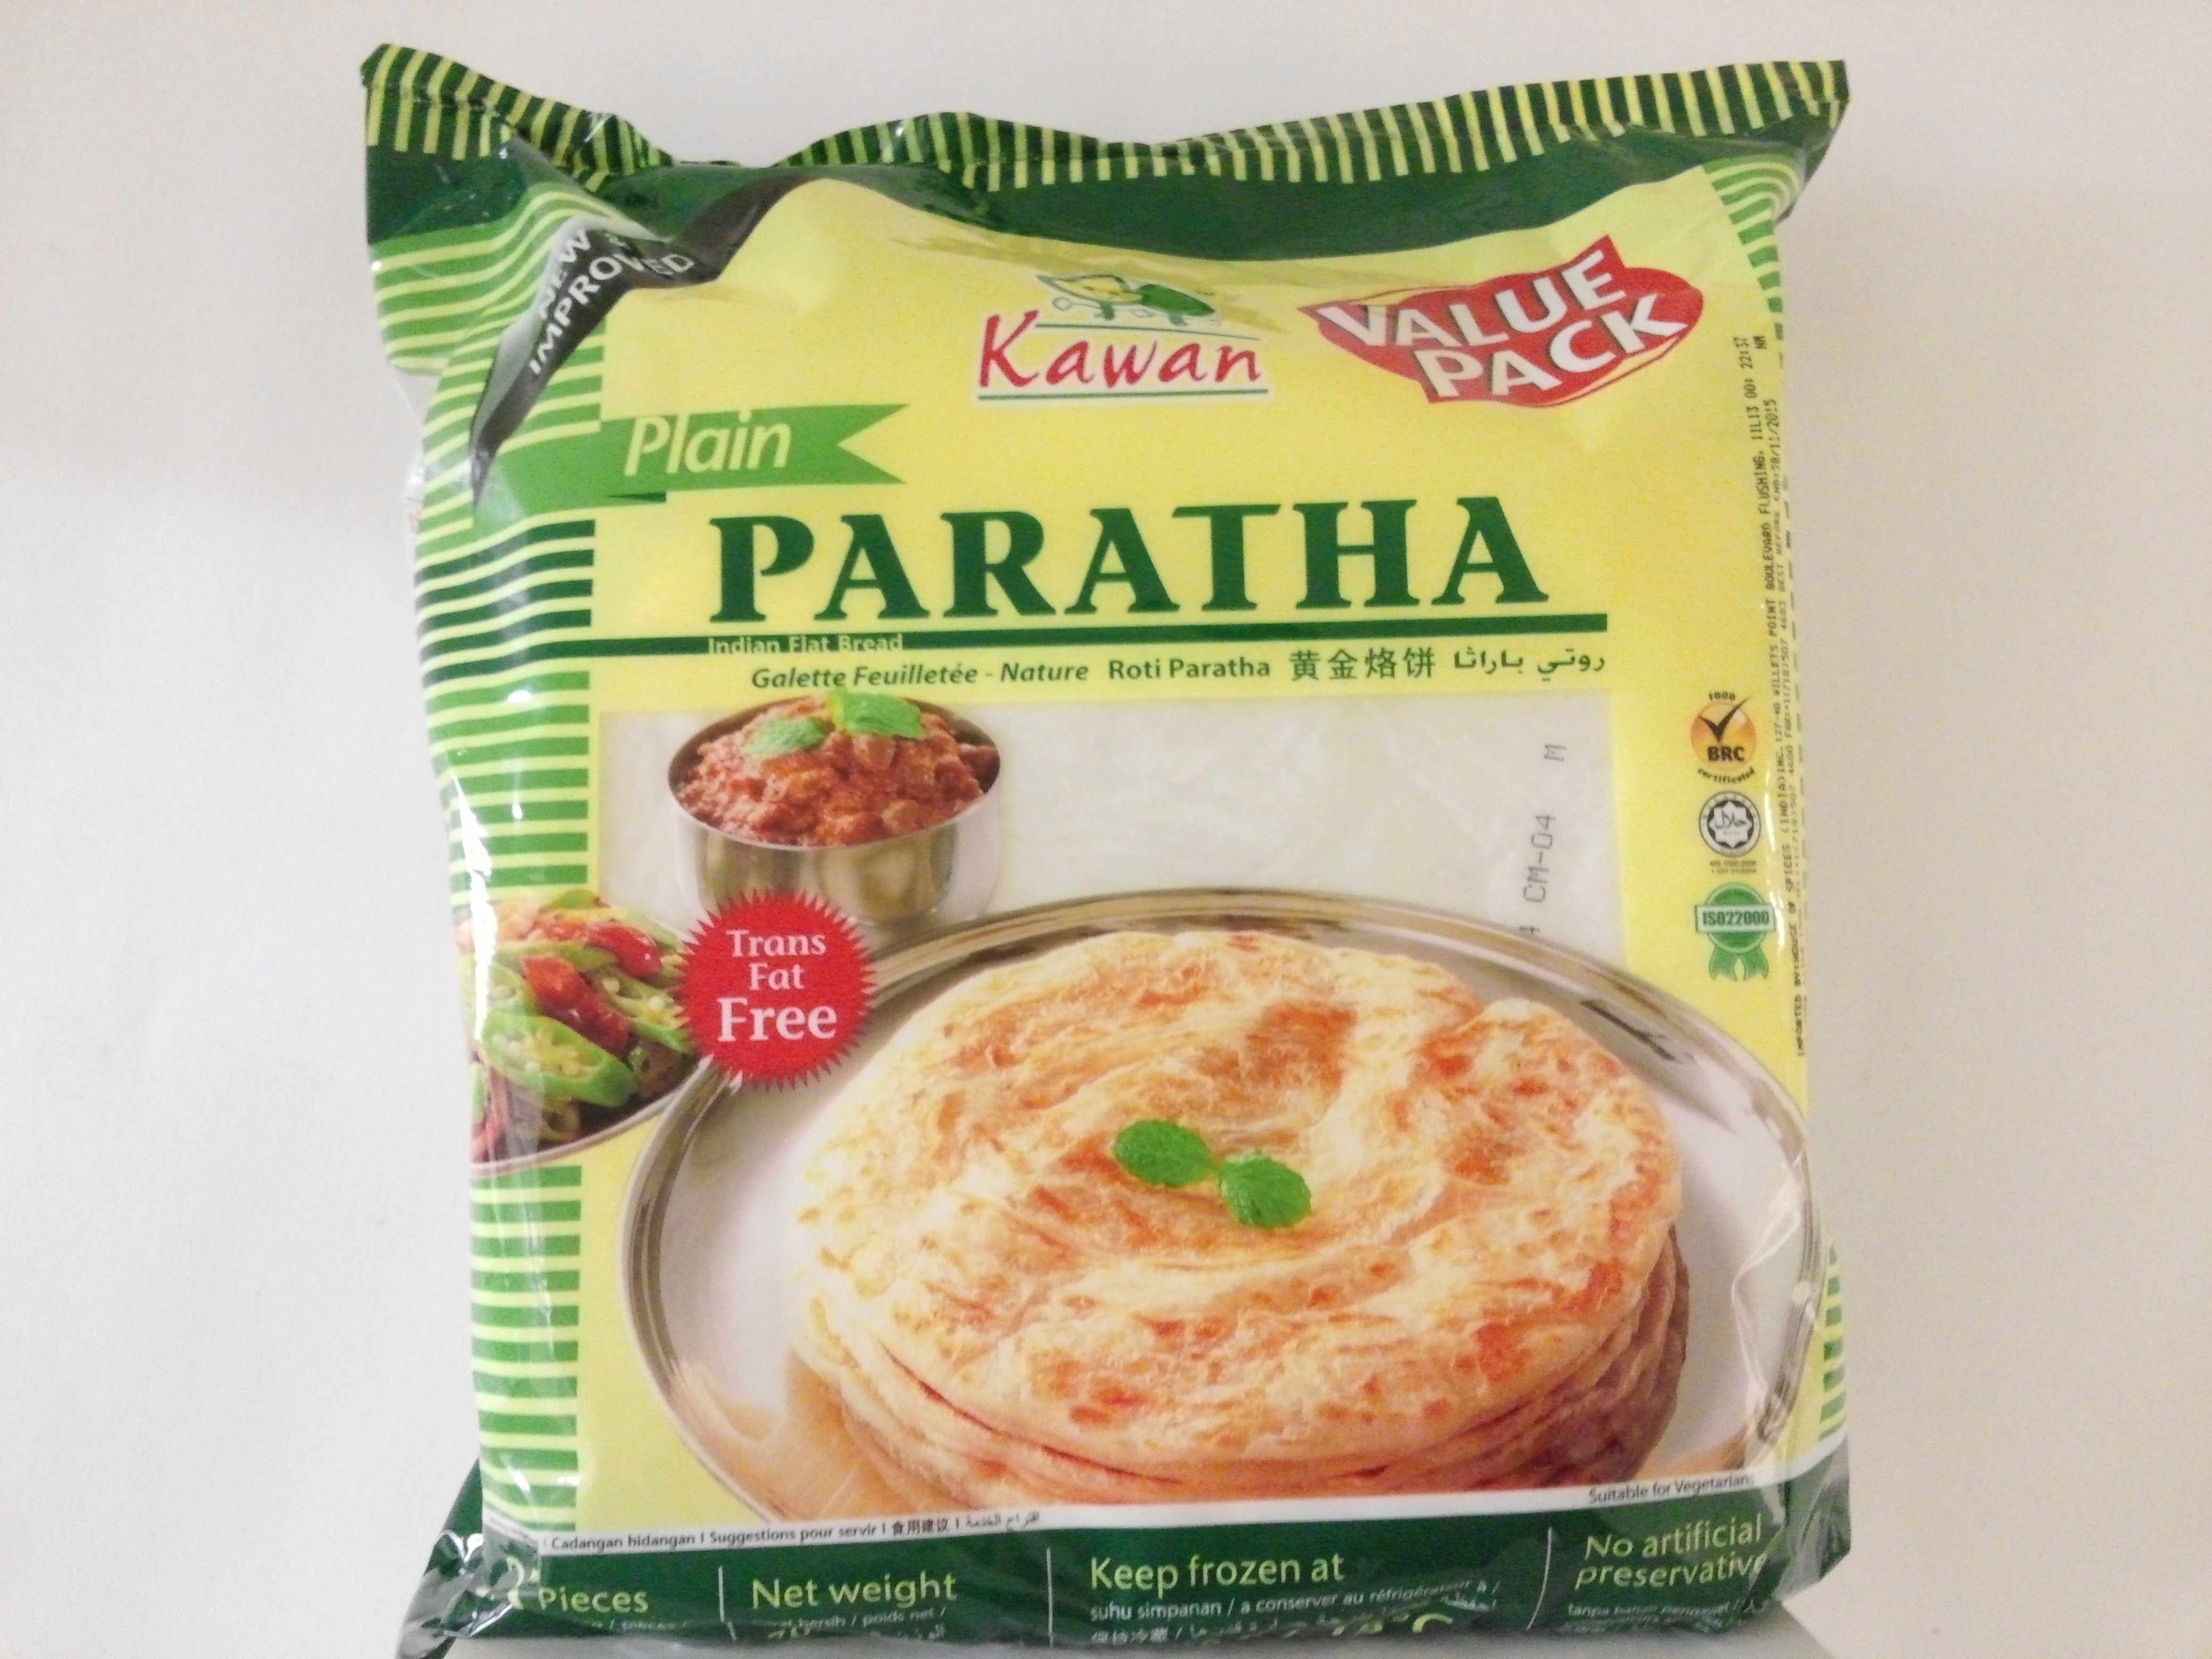 Roti Paratha Kawan Kawan Plain Paratha Value